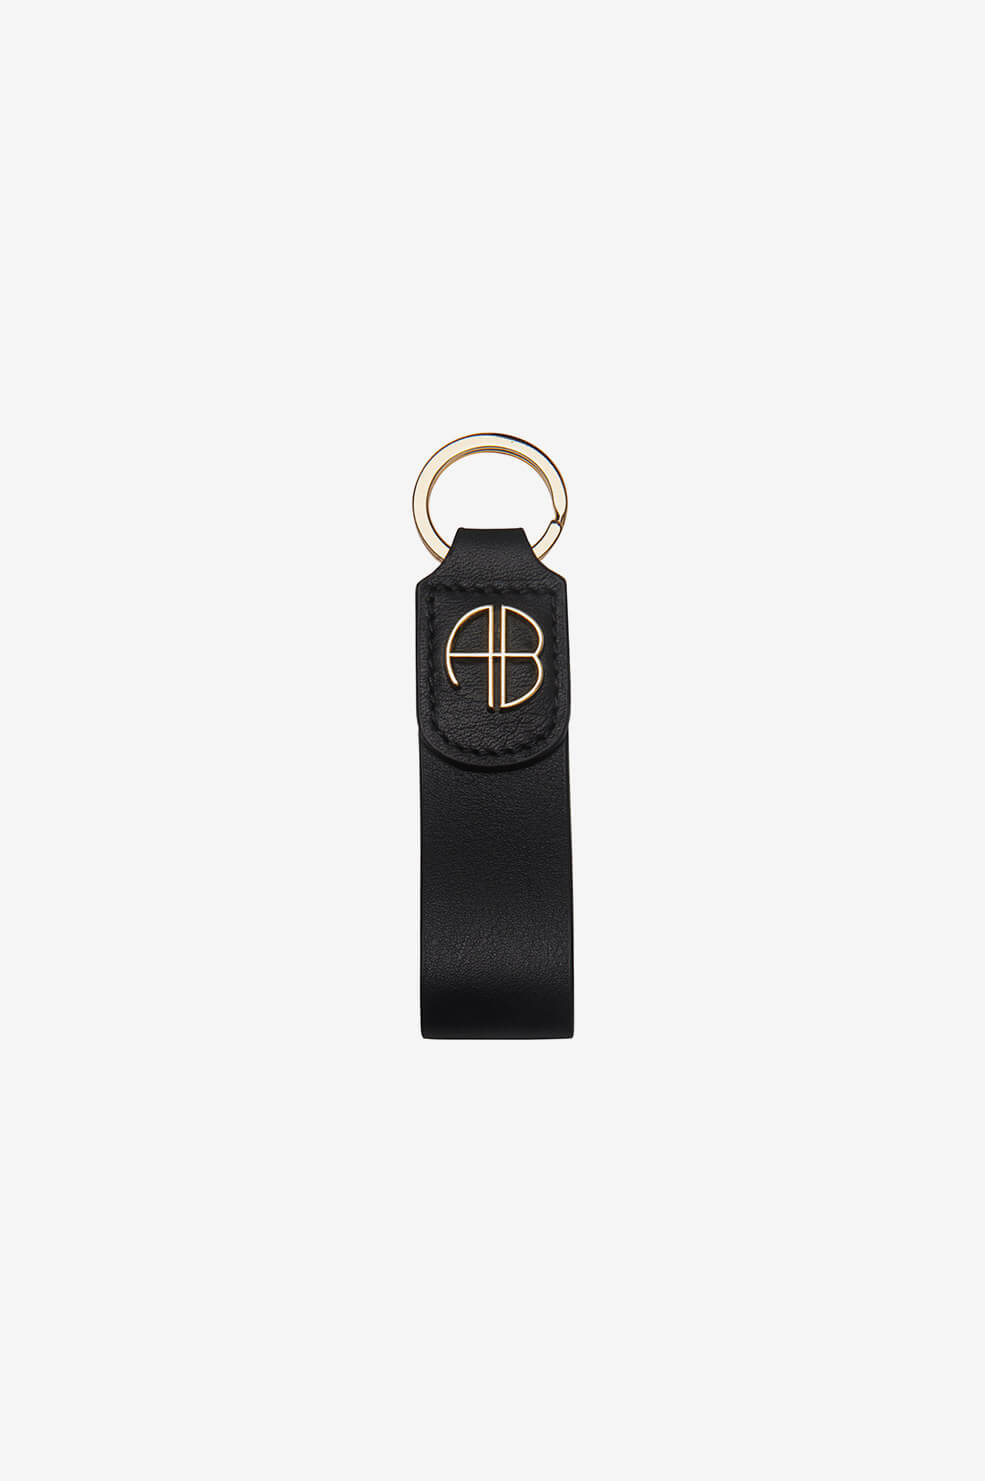 AB Key Chain - Black